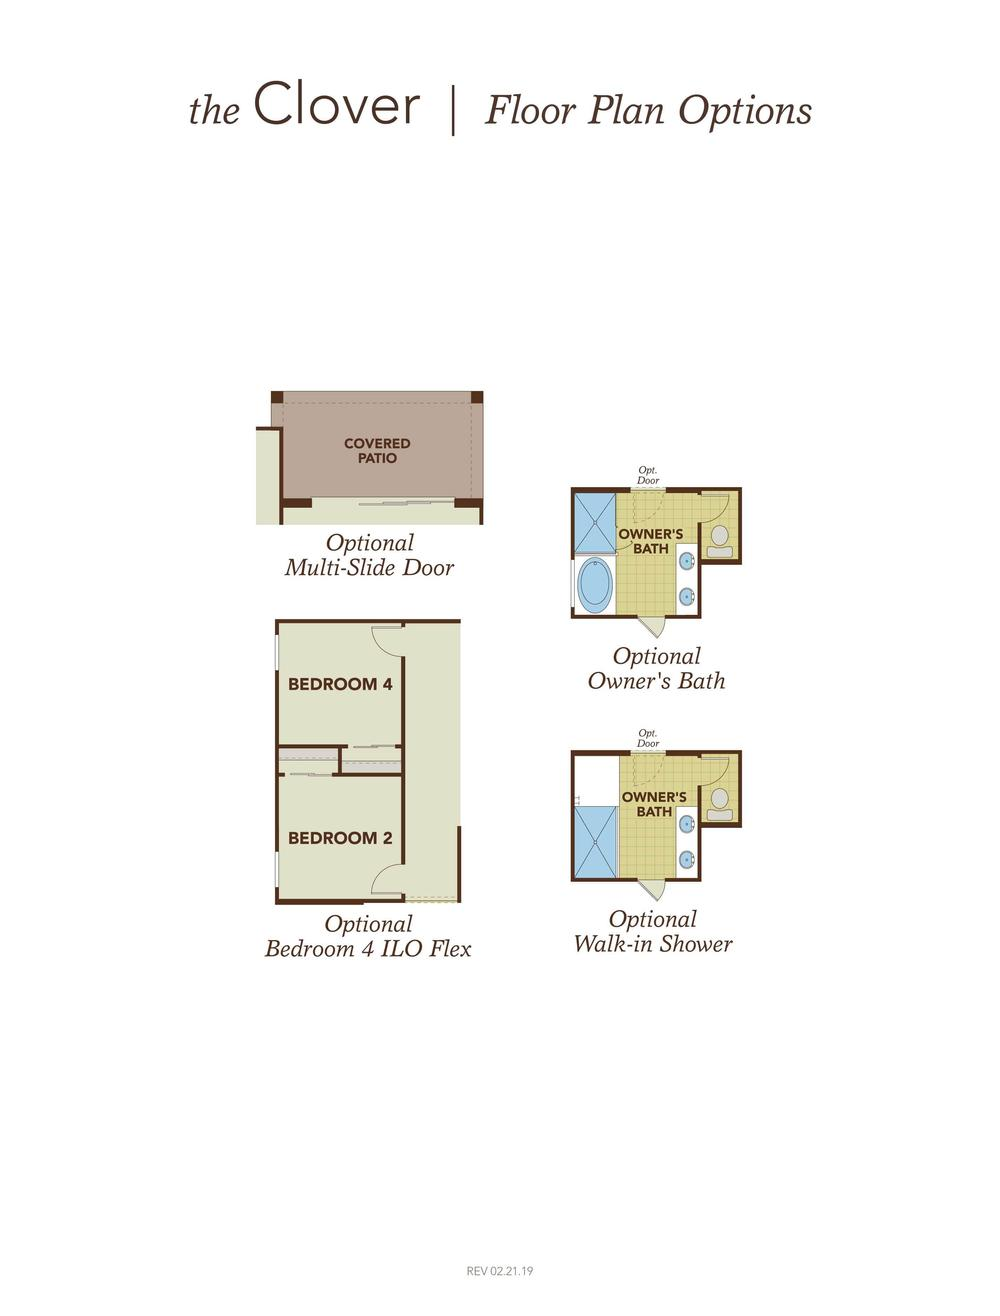 Clover Home Plan by Gehan Homes in Marley Park - Castillo Series